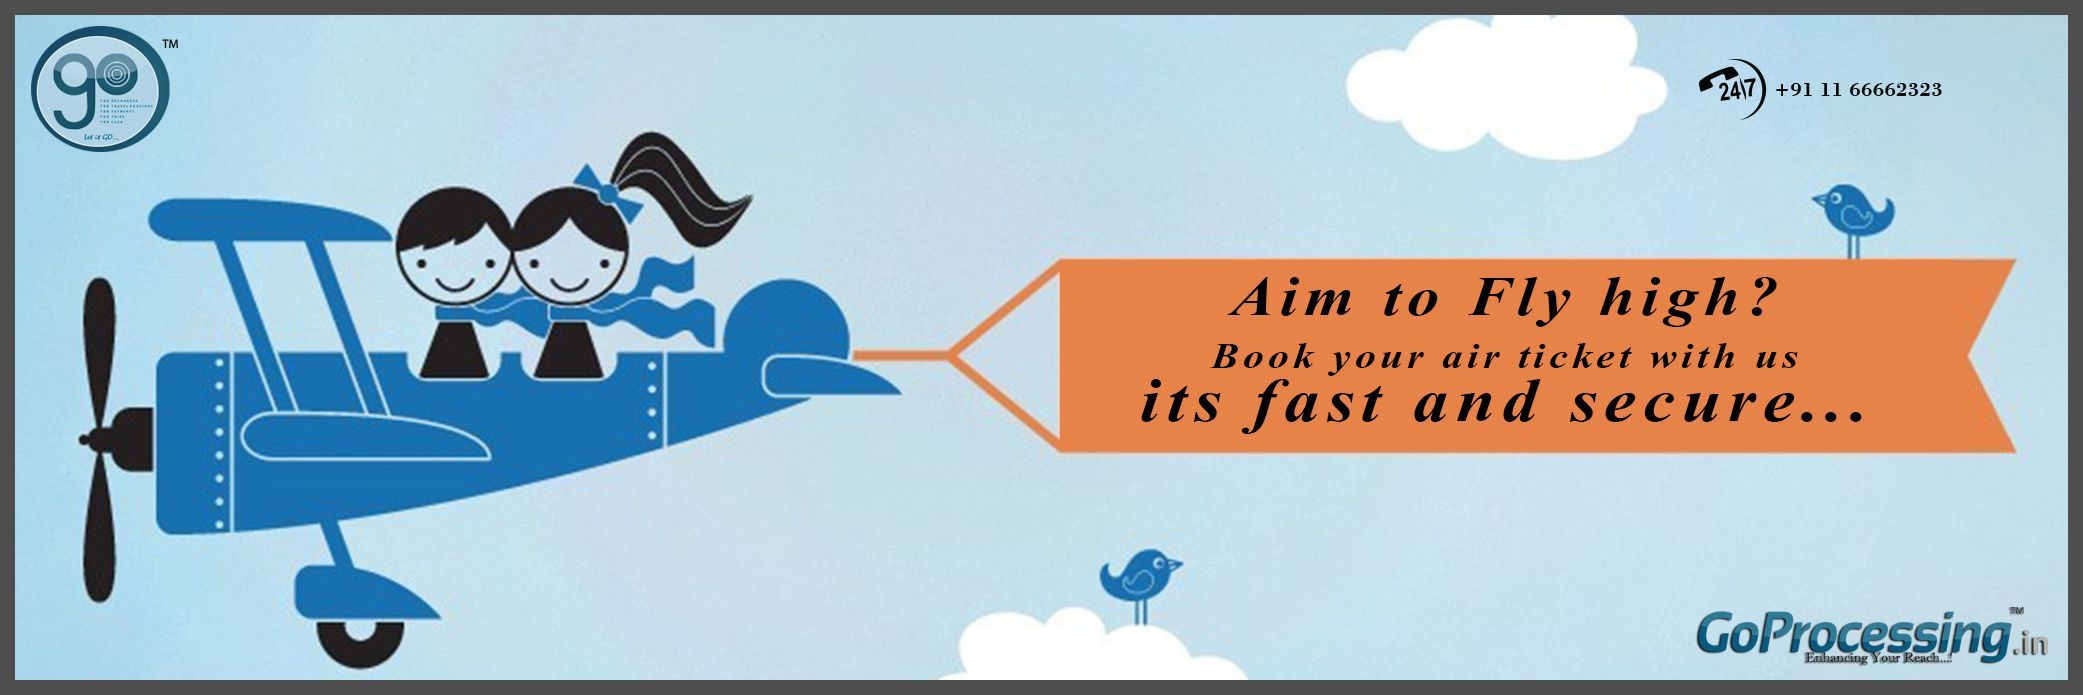 Aim to fly high book your air ticket with us its fast and